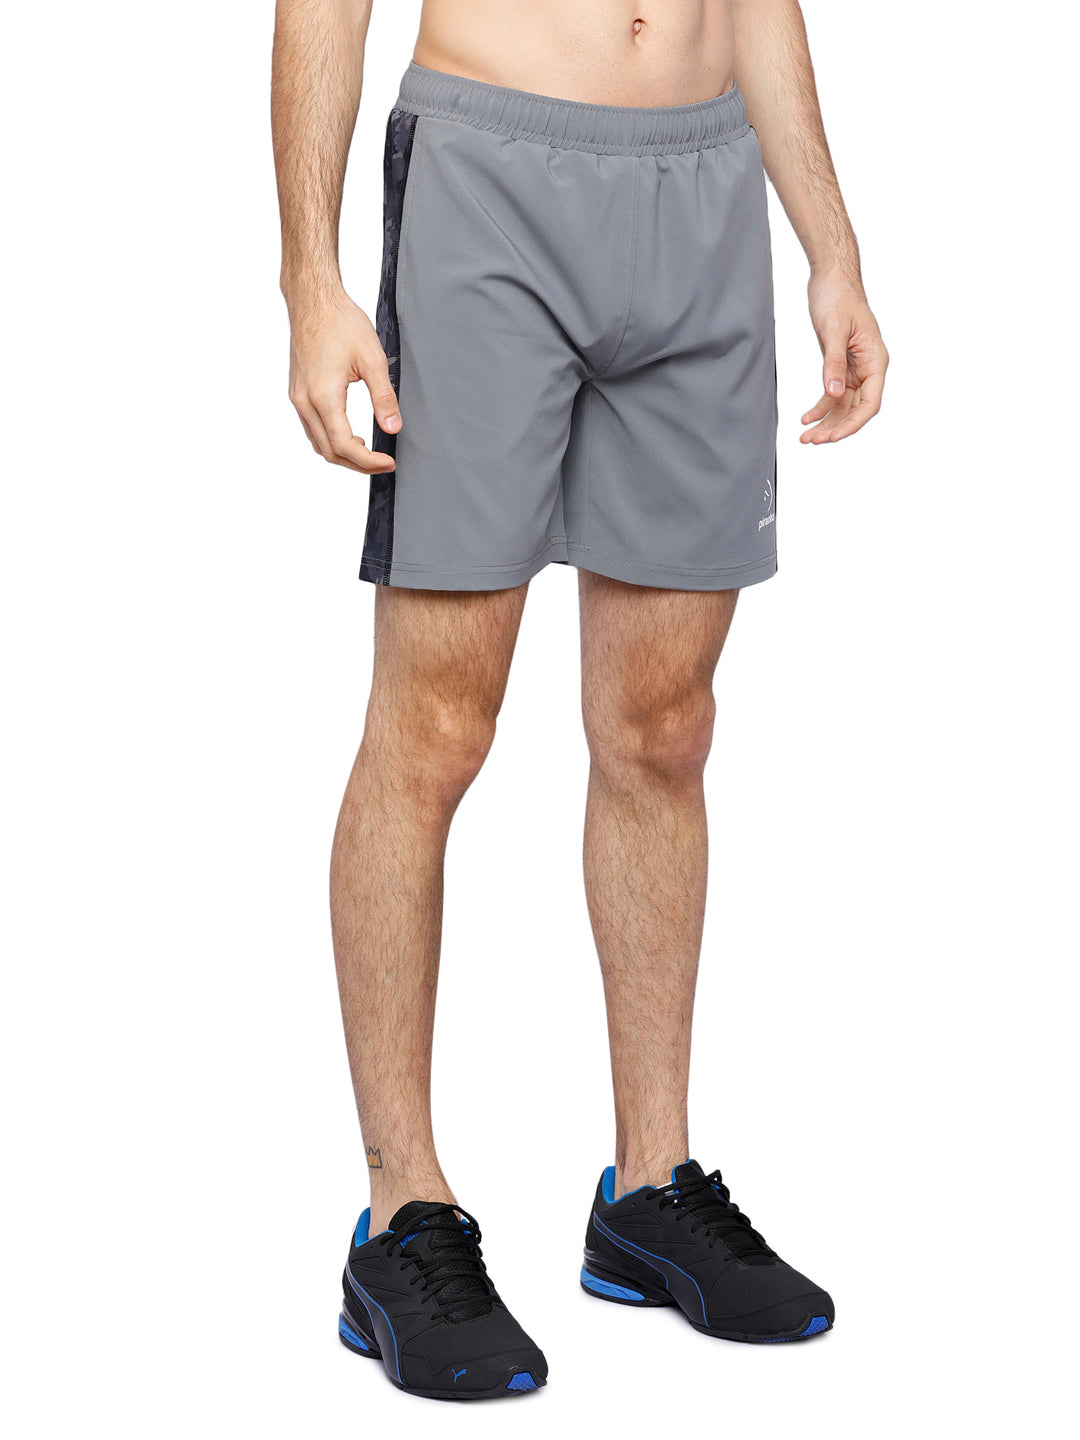 Piranha Men's Grey Printed Shorts - S318